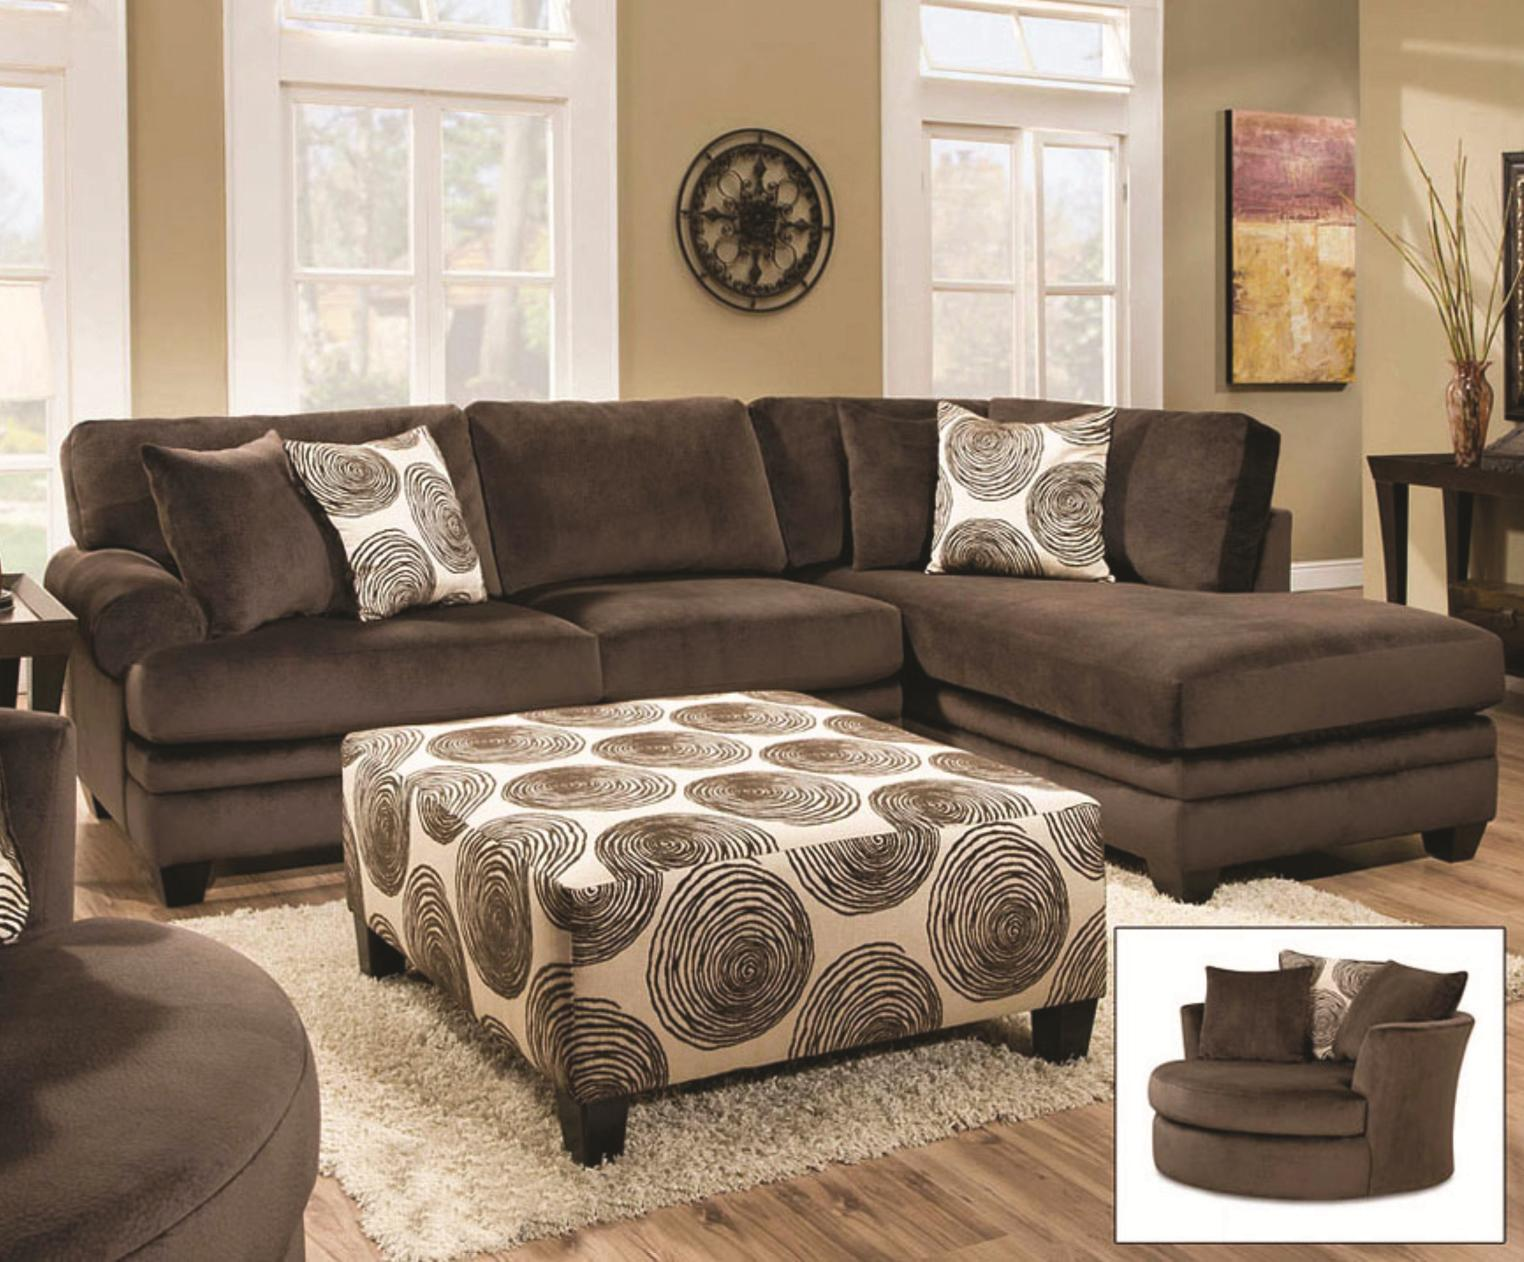 Albany 8642 transitional sectional sofa with chaise for Albany saturn sectional sofa chaise